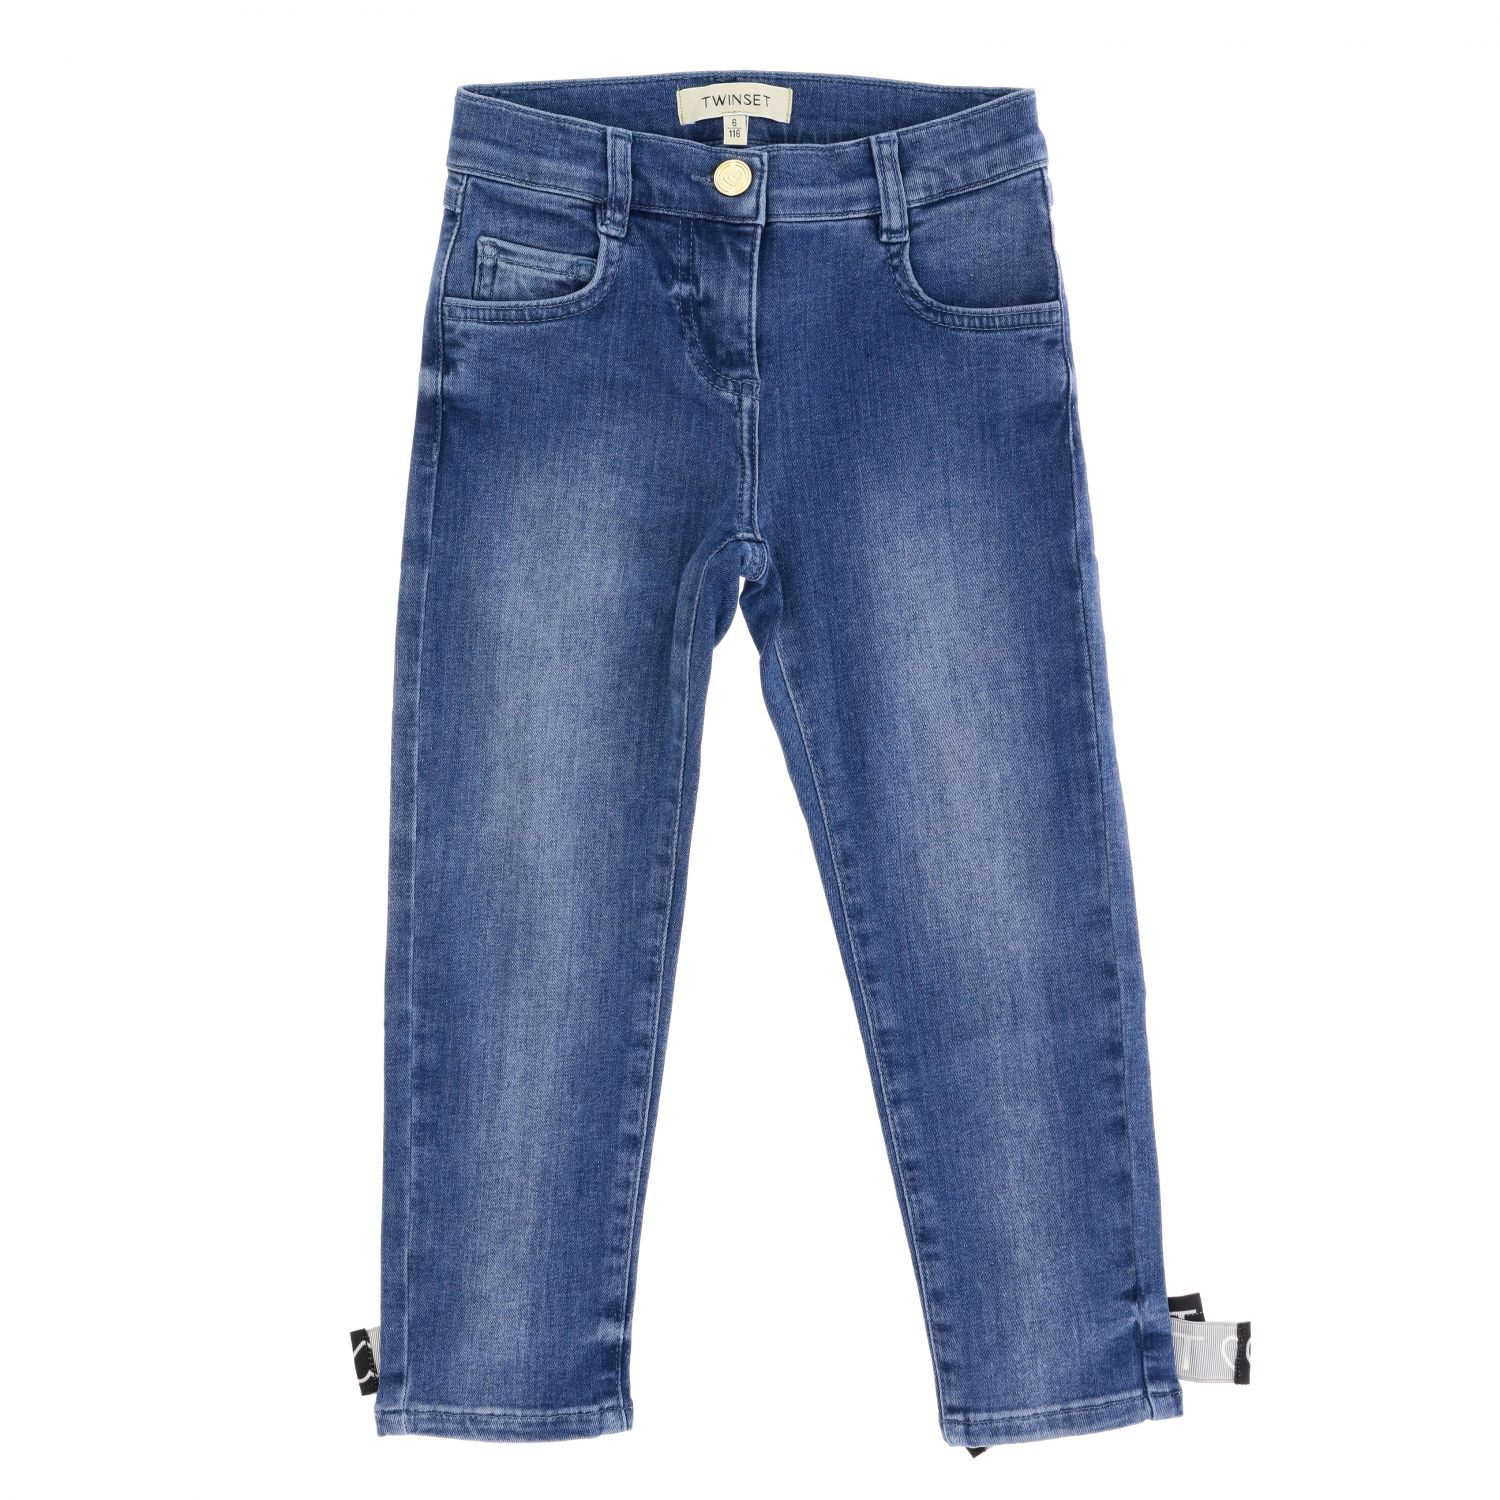 Twin-set jeans in used denim with bows denim 1